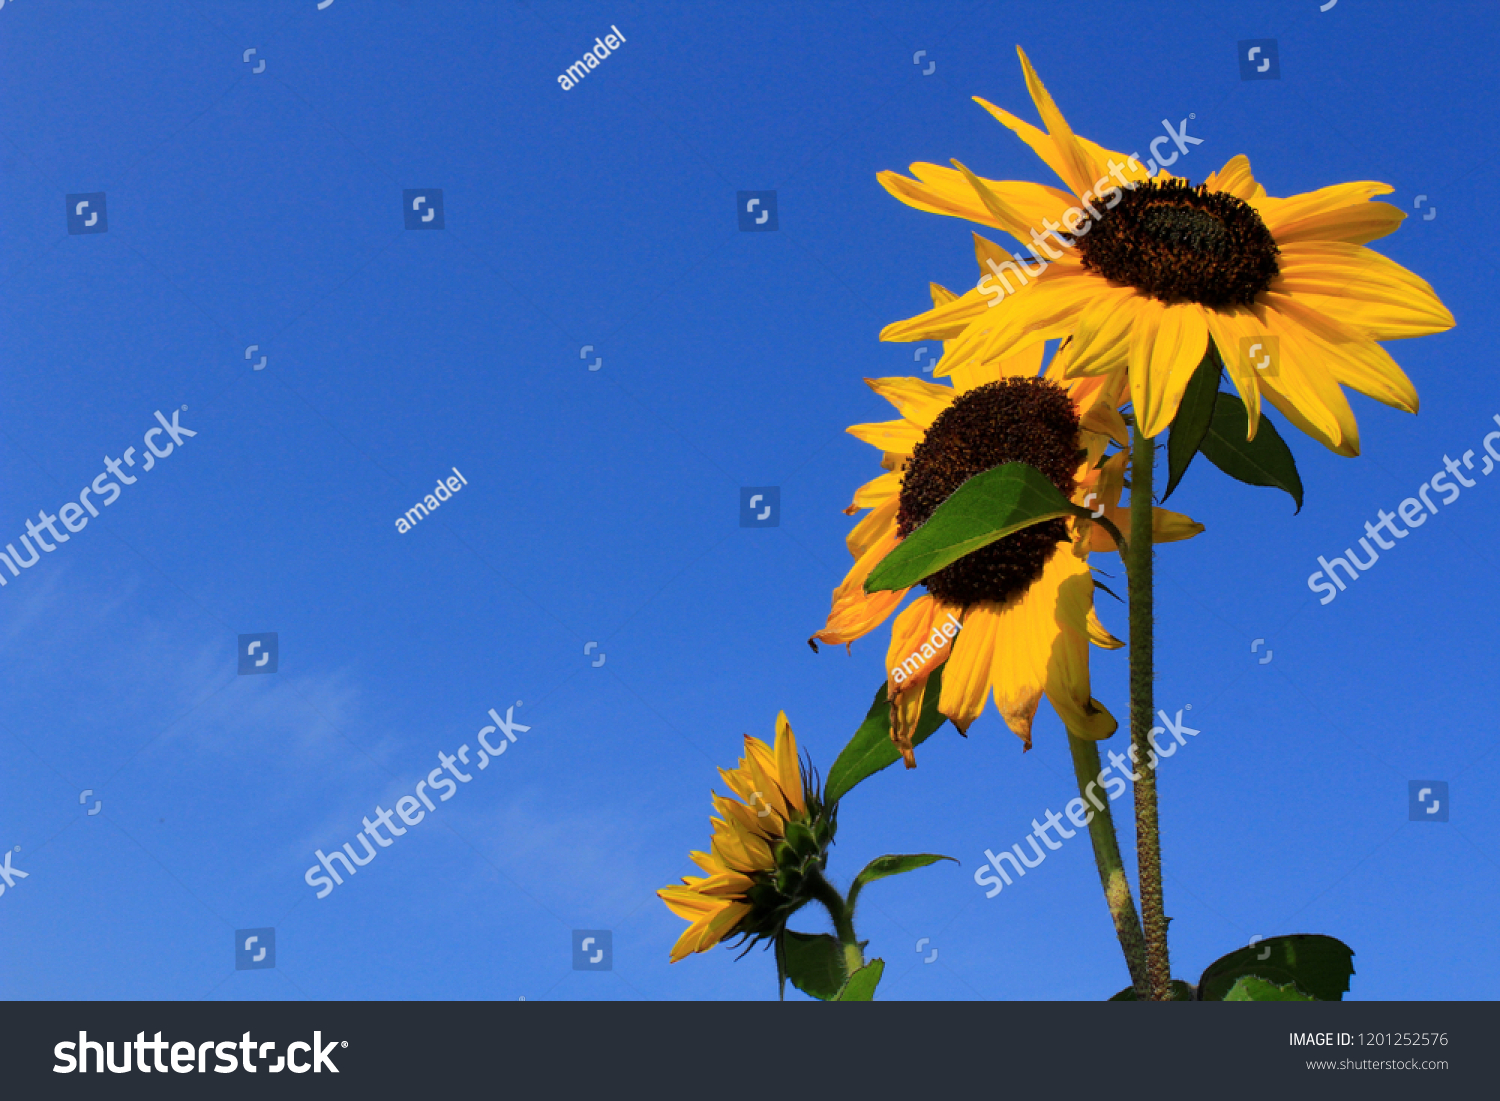 Sunflowers in the sky background.